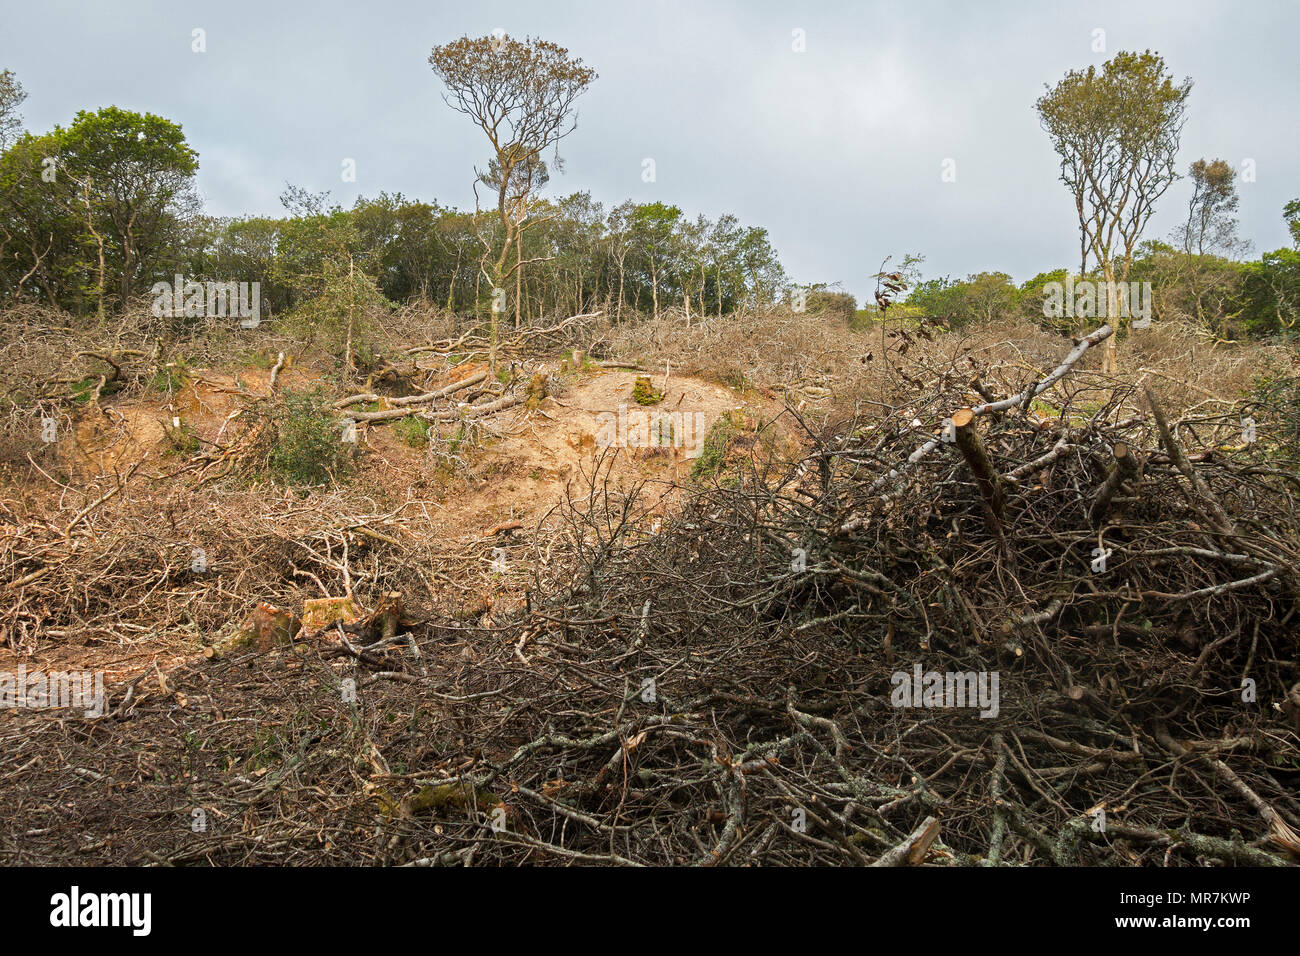 ancient woodland clearance, tree felling coppicing at unity woods, cornwall, england, britain, uk. - Stock Image